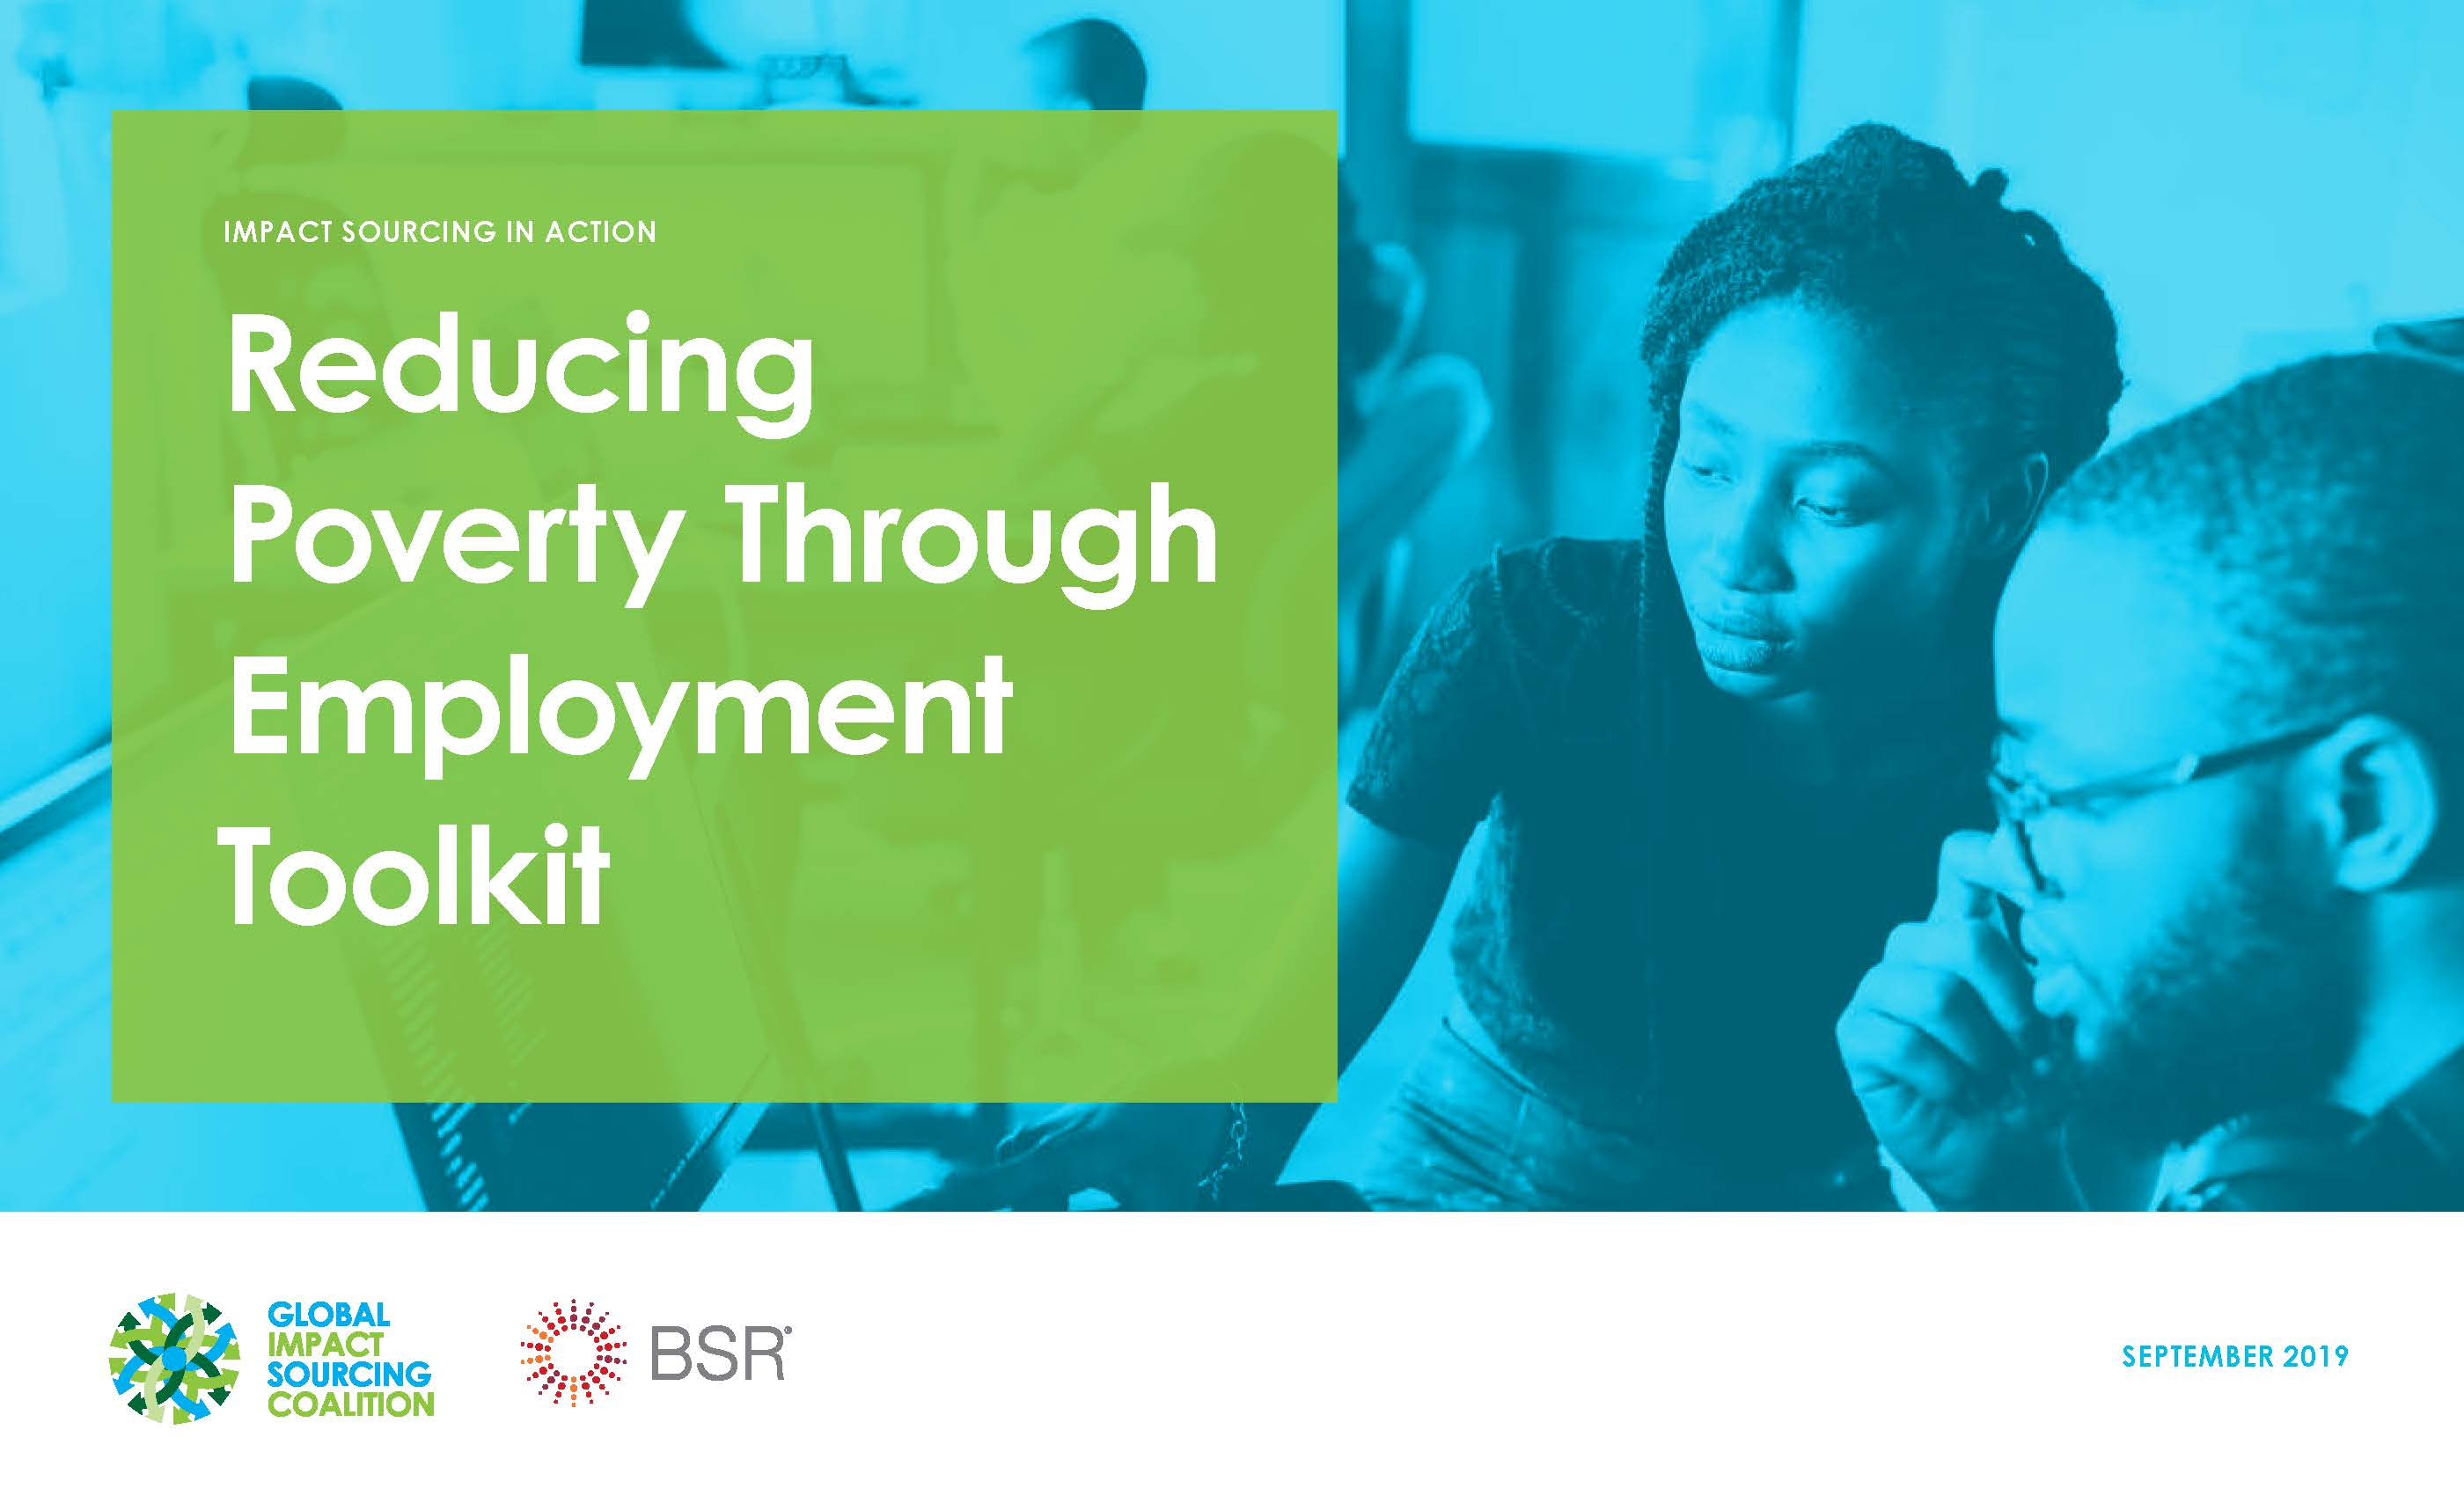 Reducing Poverty through Employment Toolkit